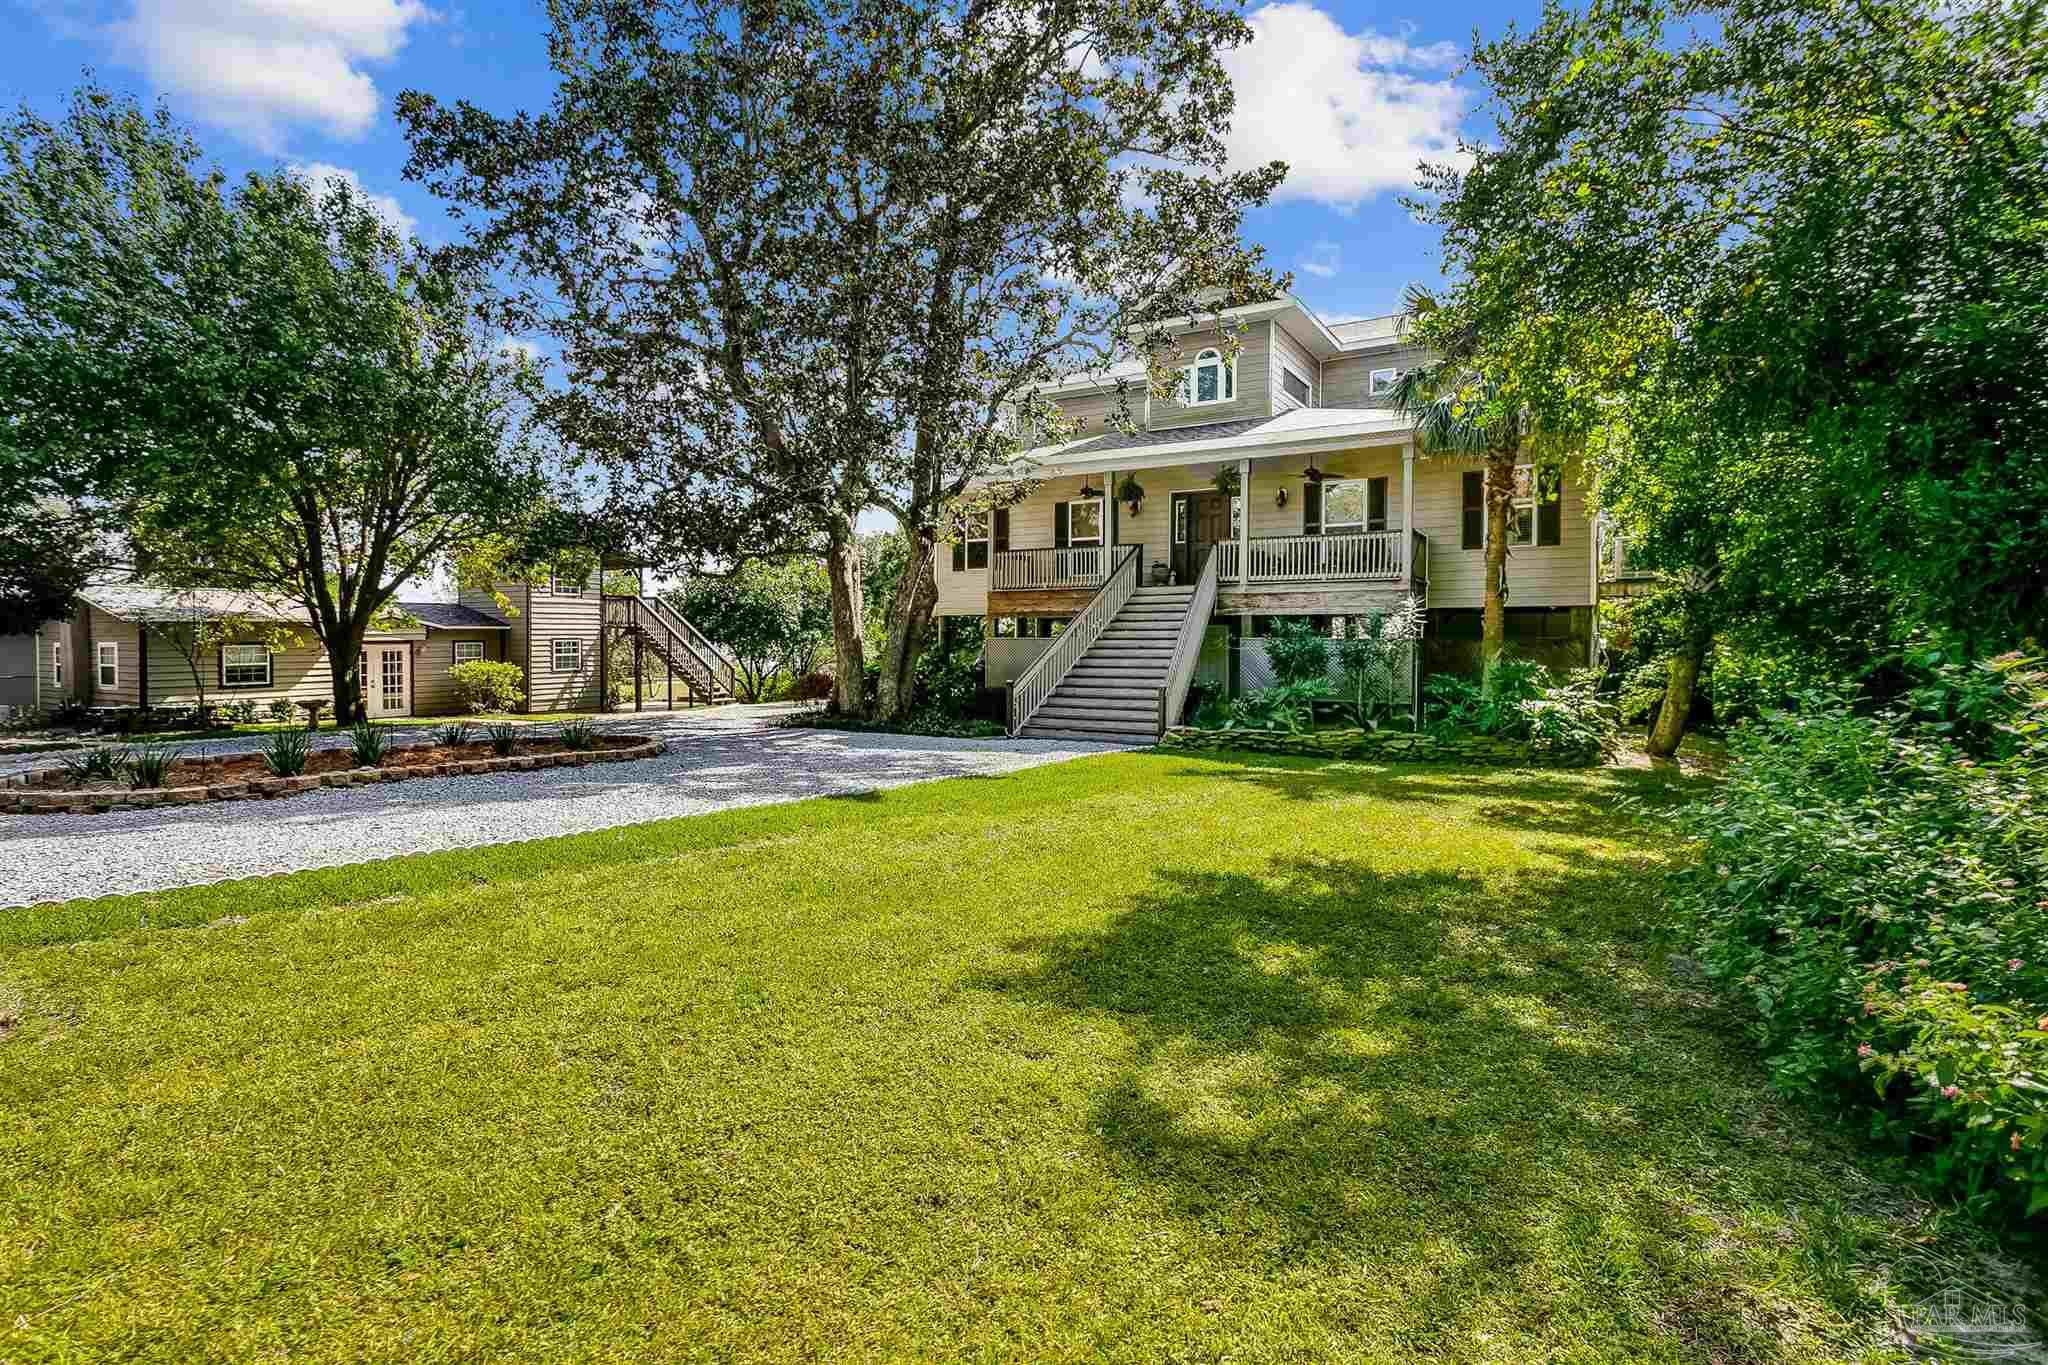 """Rarely do you see a more beautiful setting that is over an acre on the Intracoastal Waterway with 144 feet of beach.  This 4 bed 2.5 bath home has so much to offer.  The entire 2nd floor (living area) has 18 inch travertine throughout, energy-efficient blinds that cover all of the windows and a view you won't believe.  From the foyer you walk into the living room w/wood burning fireplace, that leads into the kitchen/dining area.  The kitchen features a commercial grade Wolf range with 2 ovens, 4 burners, a grill and a griddle.  It also has a commercial grade Wolf exhaust fan and a pot filler.  There is a breakfast nook and a breakfast bar.  The sellers are currently using the formal dining room as an office.  Across the entire back of the house is a covered deck that has a hot tub an outdoor cooking area and a great view of the sound.  Upstairs has an oak staircase and oak floors in the common area.  The two very large bedrooms have carpet and window storage boxes with upholstered sitting areas for reading/relaxing.  The third bedroom is currently being used as an insulated music room with wood floors. The exterior features an inground pool, sprinkler system,  5 fruit trees, many flowering trees and a hammock near the 144 of beach  If you are still not convinced....there is a guest house (could be used as an ABB) that is furnished, with 2 bedrooms, kitchen and laundry room.  Above the guest house there is an art studio. P.S. there is also a """"dumb waiter"""" in the main house so that you don't have to carry your groceries up the stairs."""